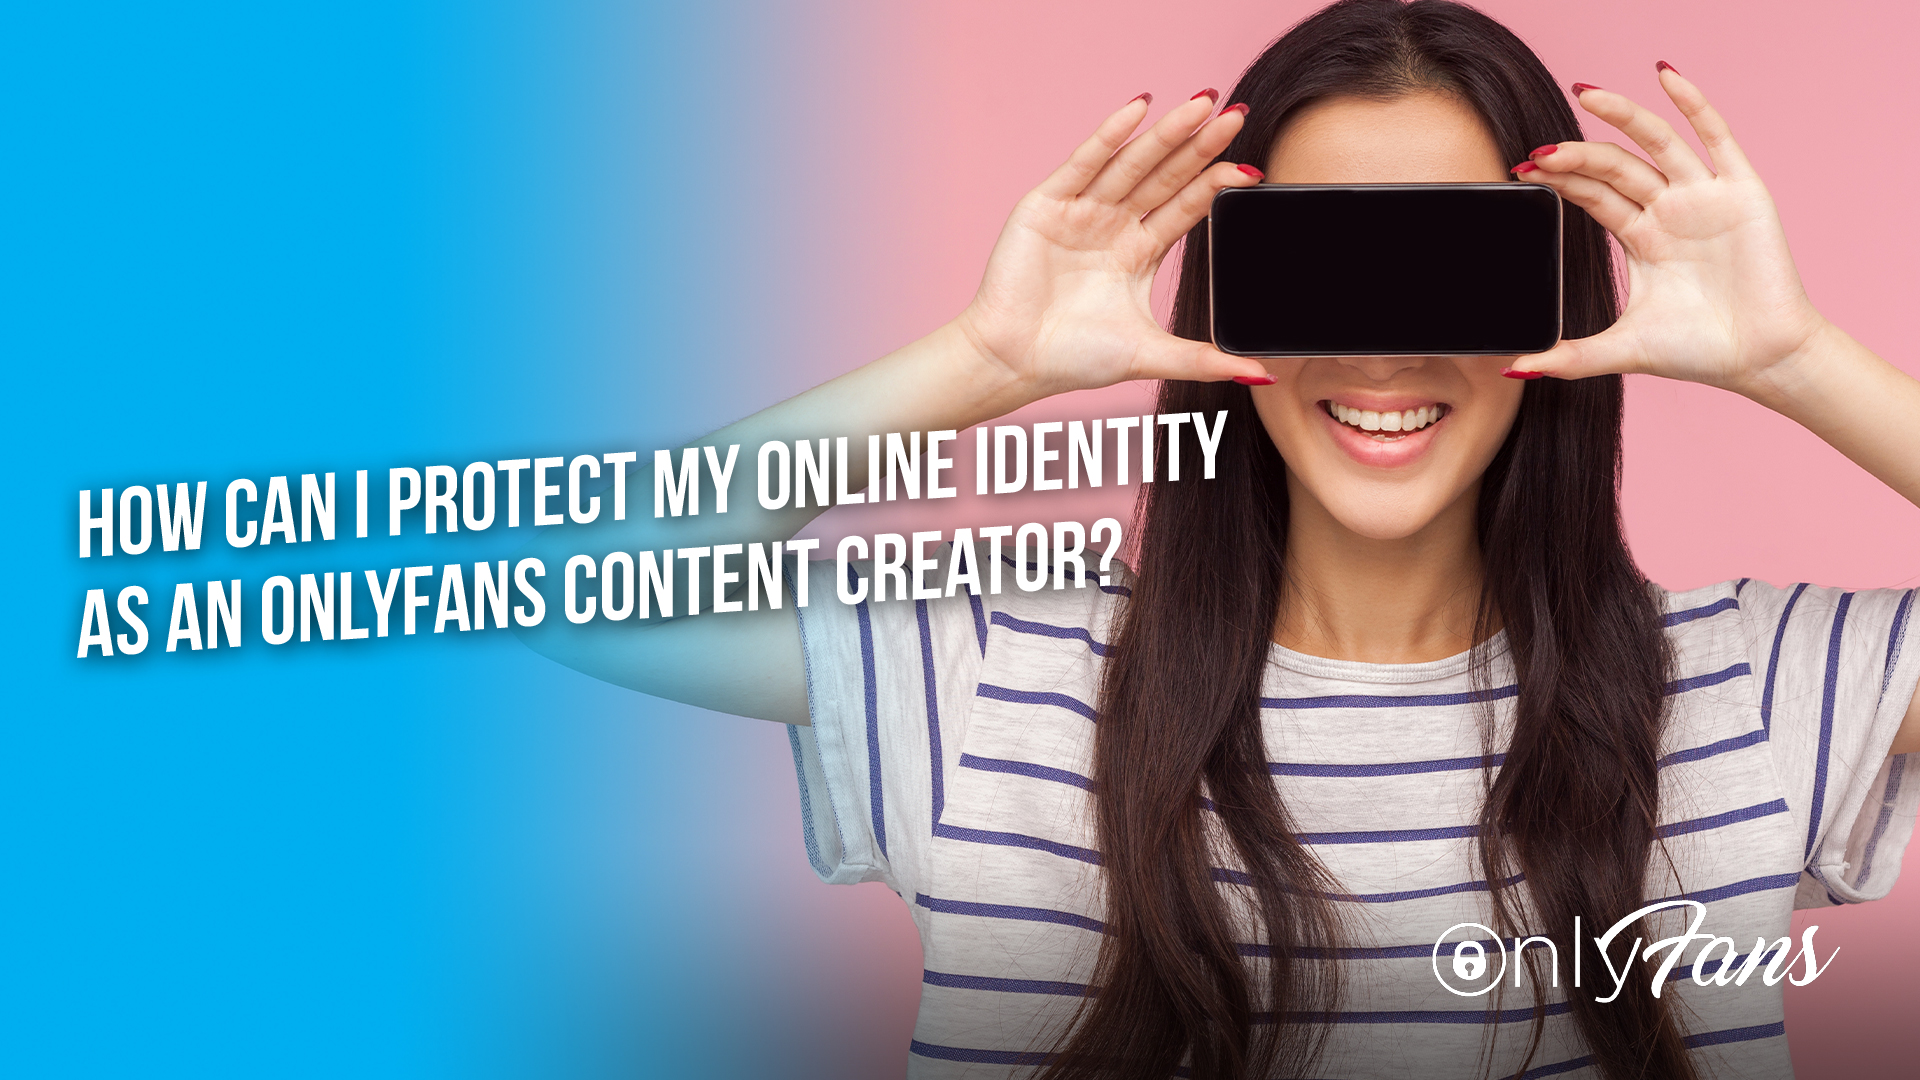 How can I protect my online identity as an OnlyFans content creator?